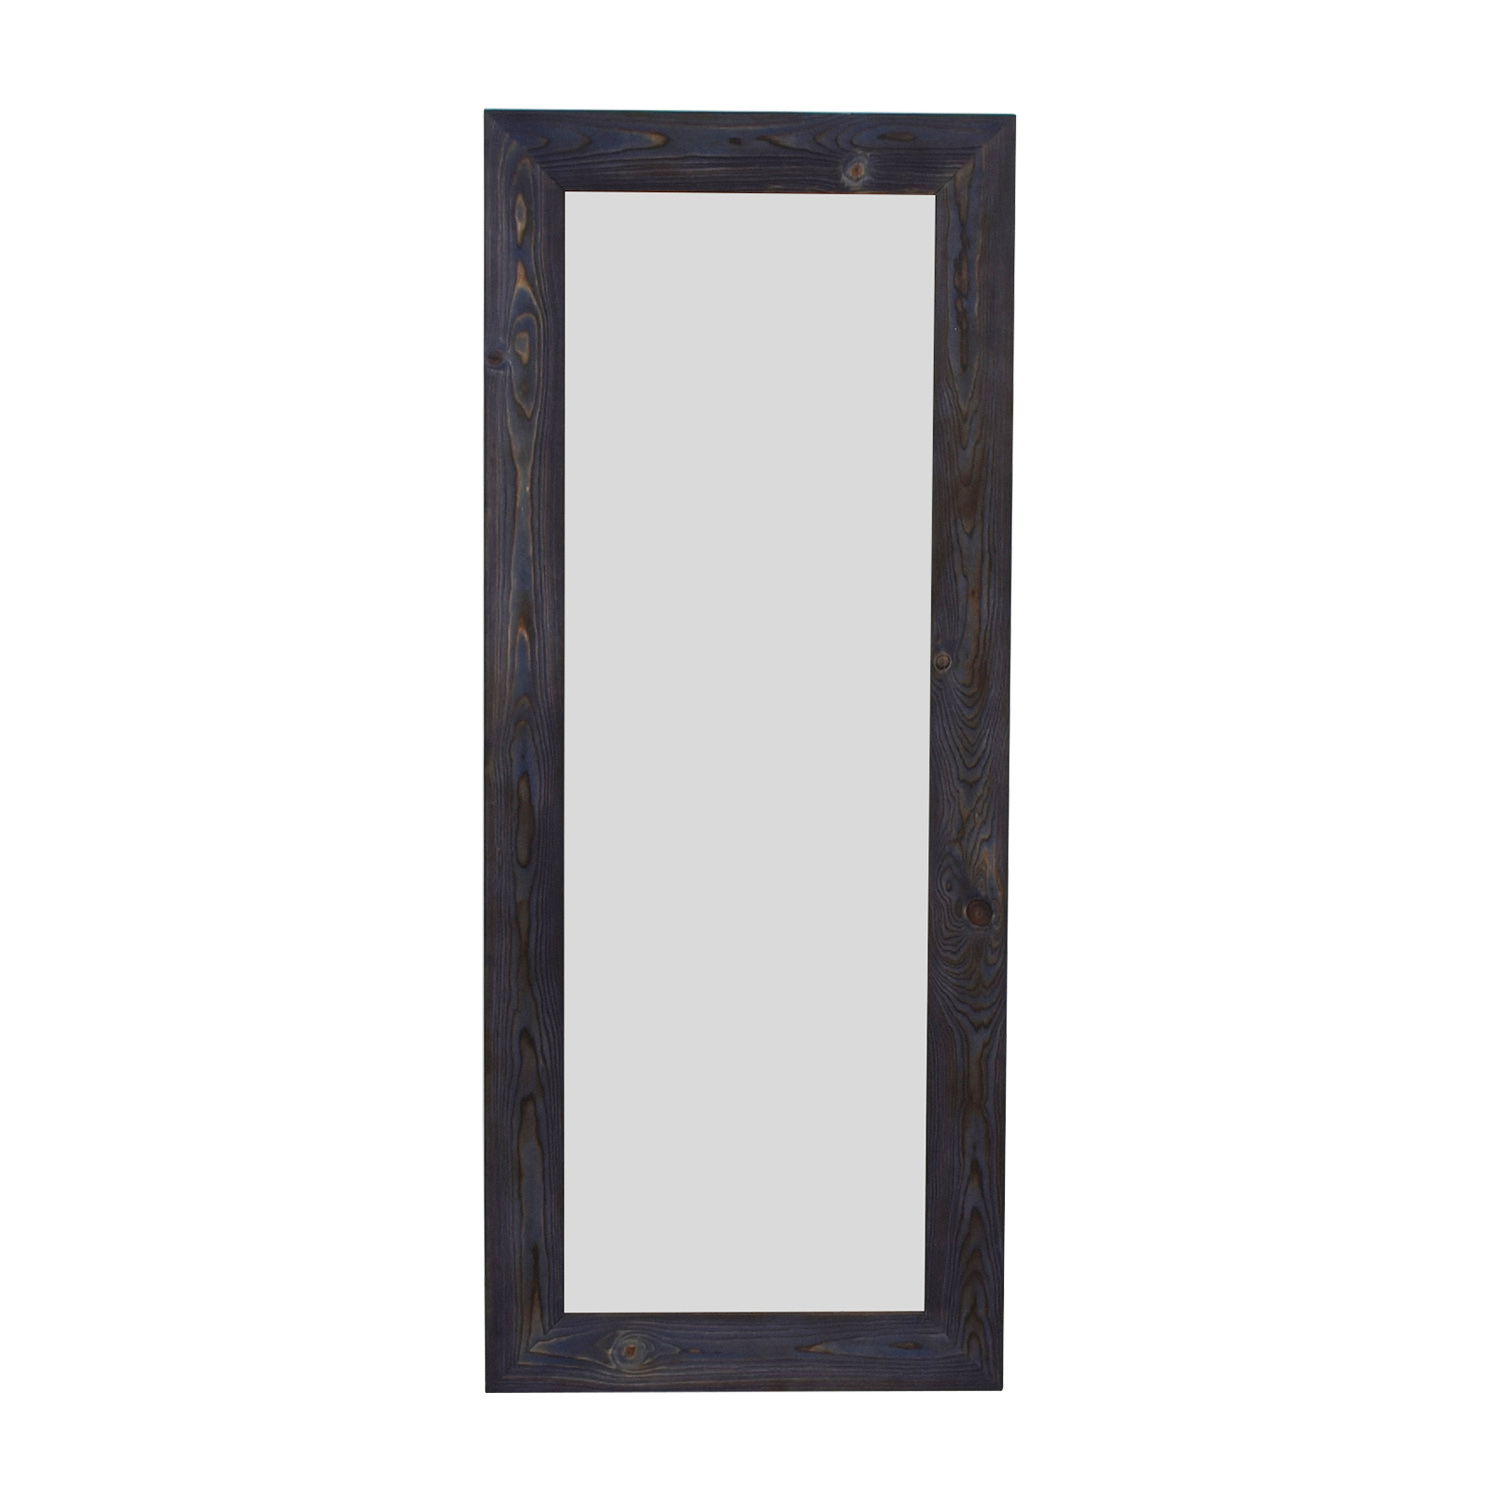 Muller Designs Muller Designs Reclaimed Wood Full-Length Mirror dimensions